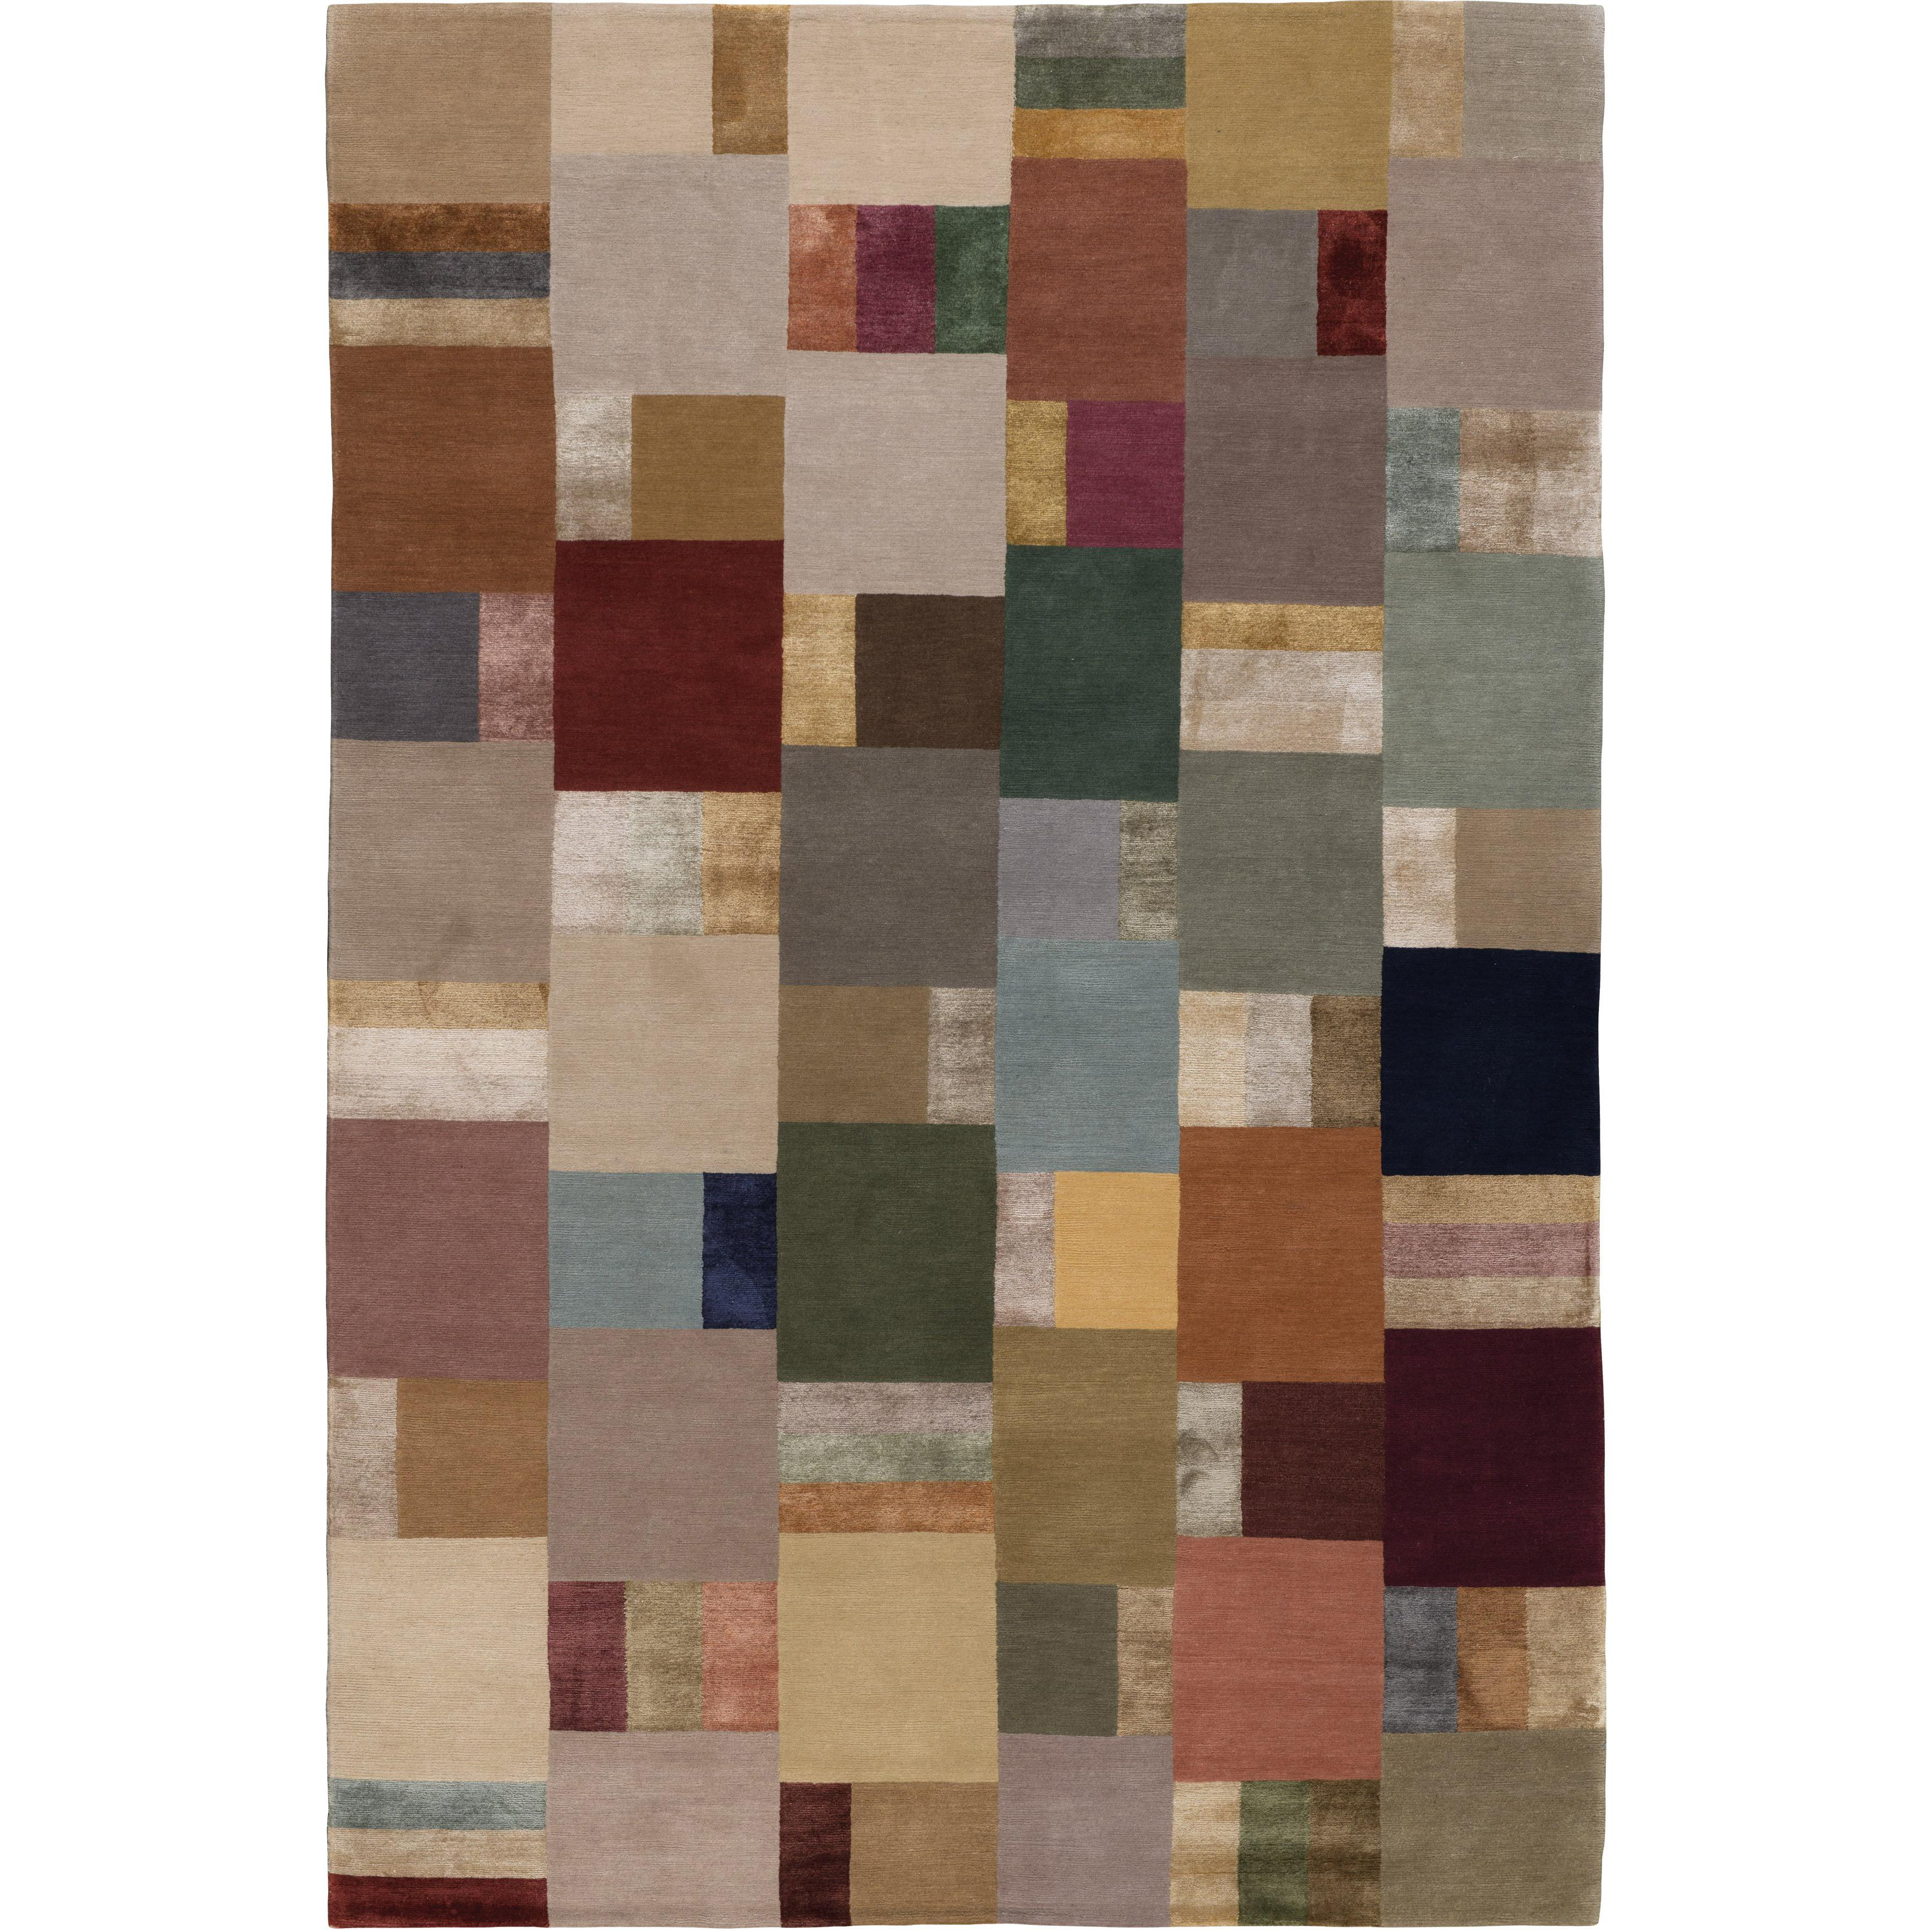 Hue Hand-Knotted 10x8 Rug in Wool and Silk by Christopher Sharp